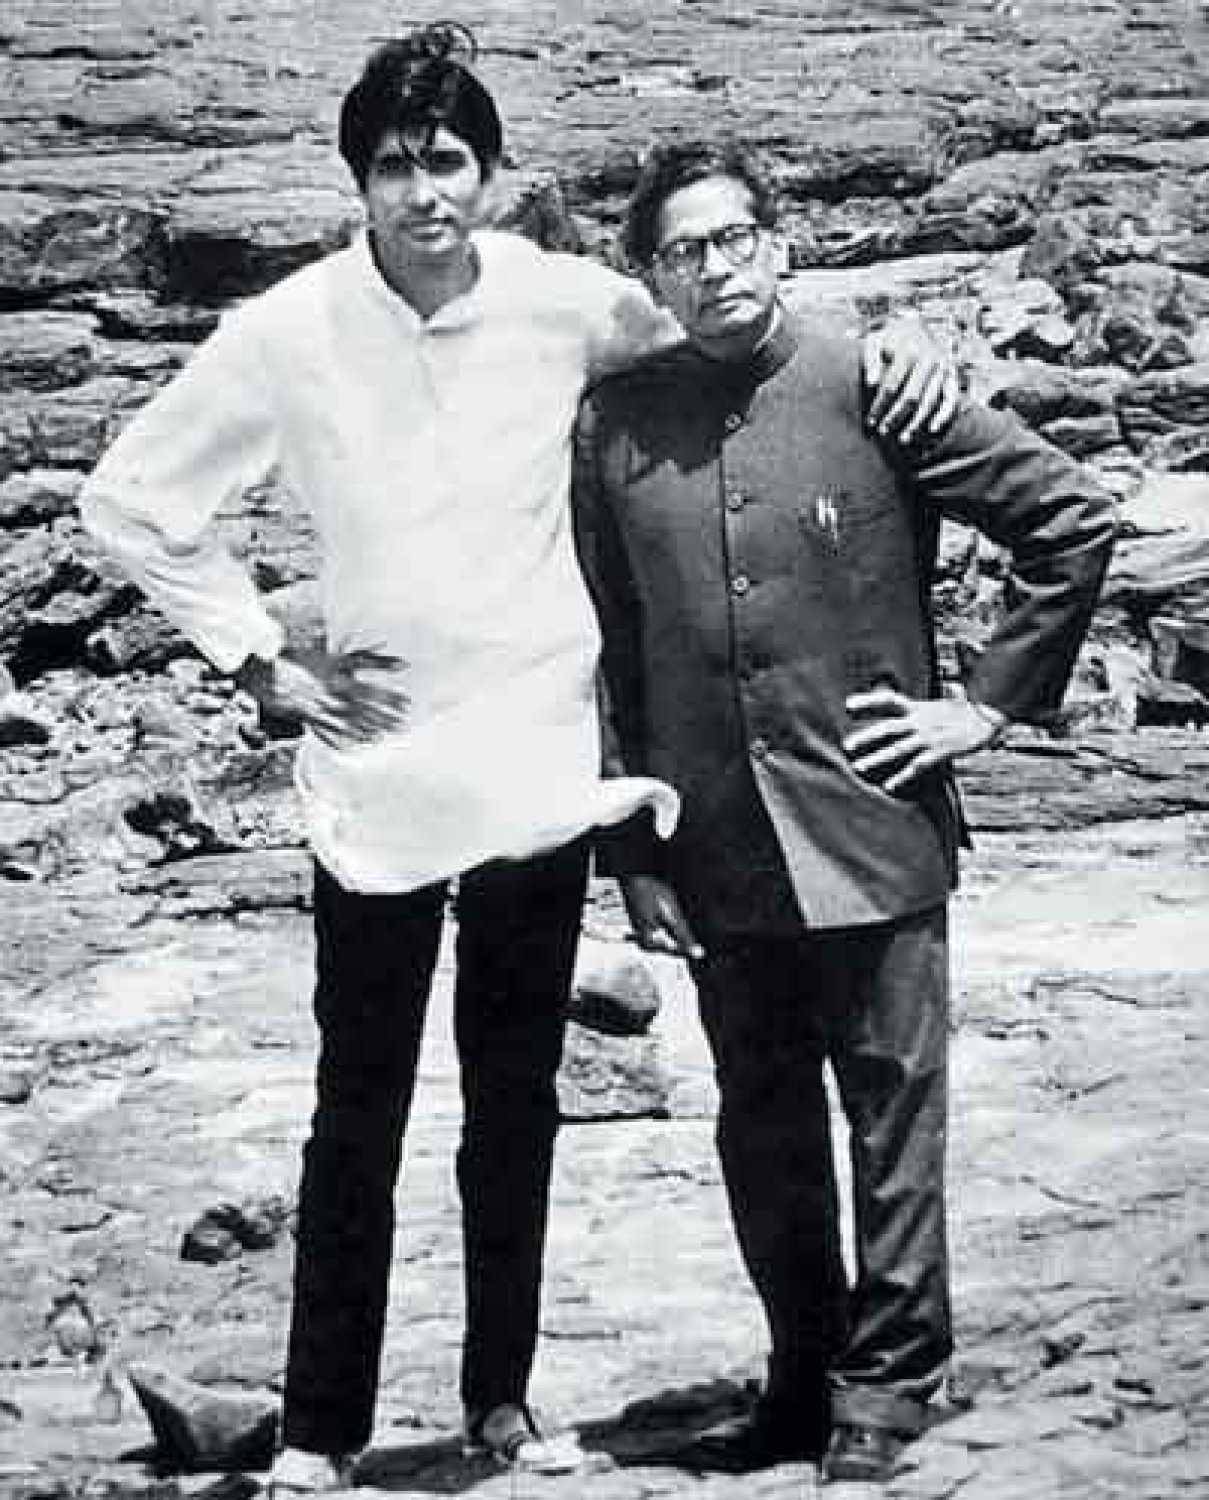 harivansh rai bachhan While amitabh bachchan is one of the biggest names in bollywood, harivansh rai bachchan, abhi's grandfather, is a legendary poet of his times jun 21, 2015, 11:50 am ist see: three generations of bachchan 'parivar' in one frame.